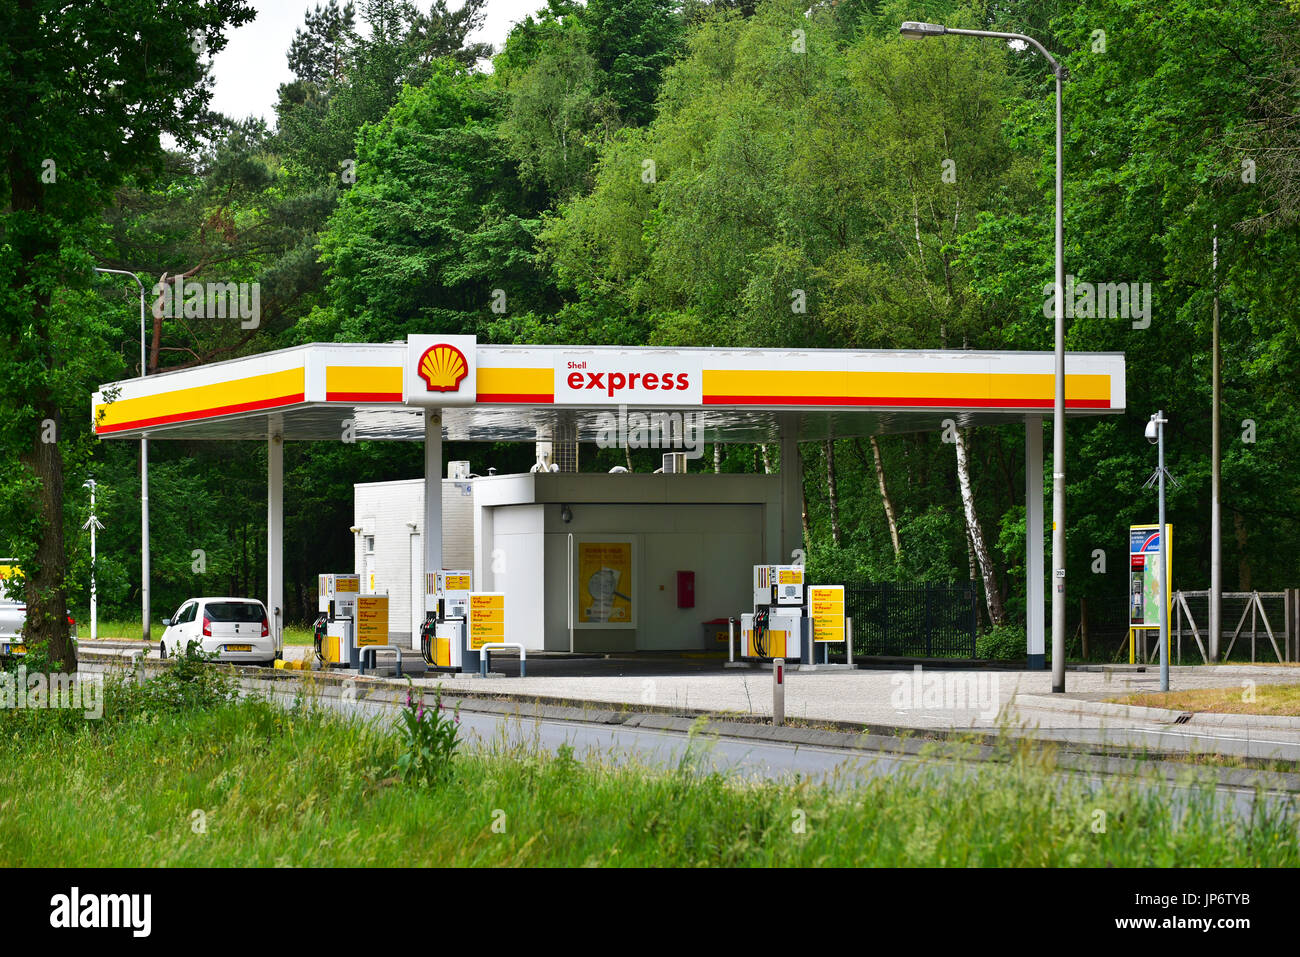 shell gas petrol service station stock photos shell gas petrol service station stock images. Black Bedroom Furniture Sets. Home Design Ideas